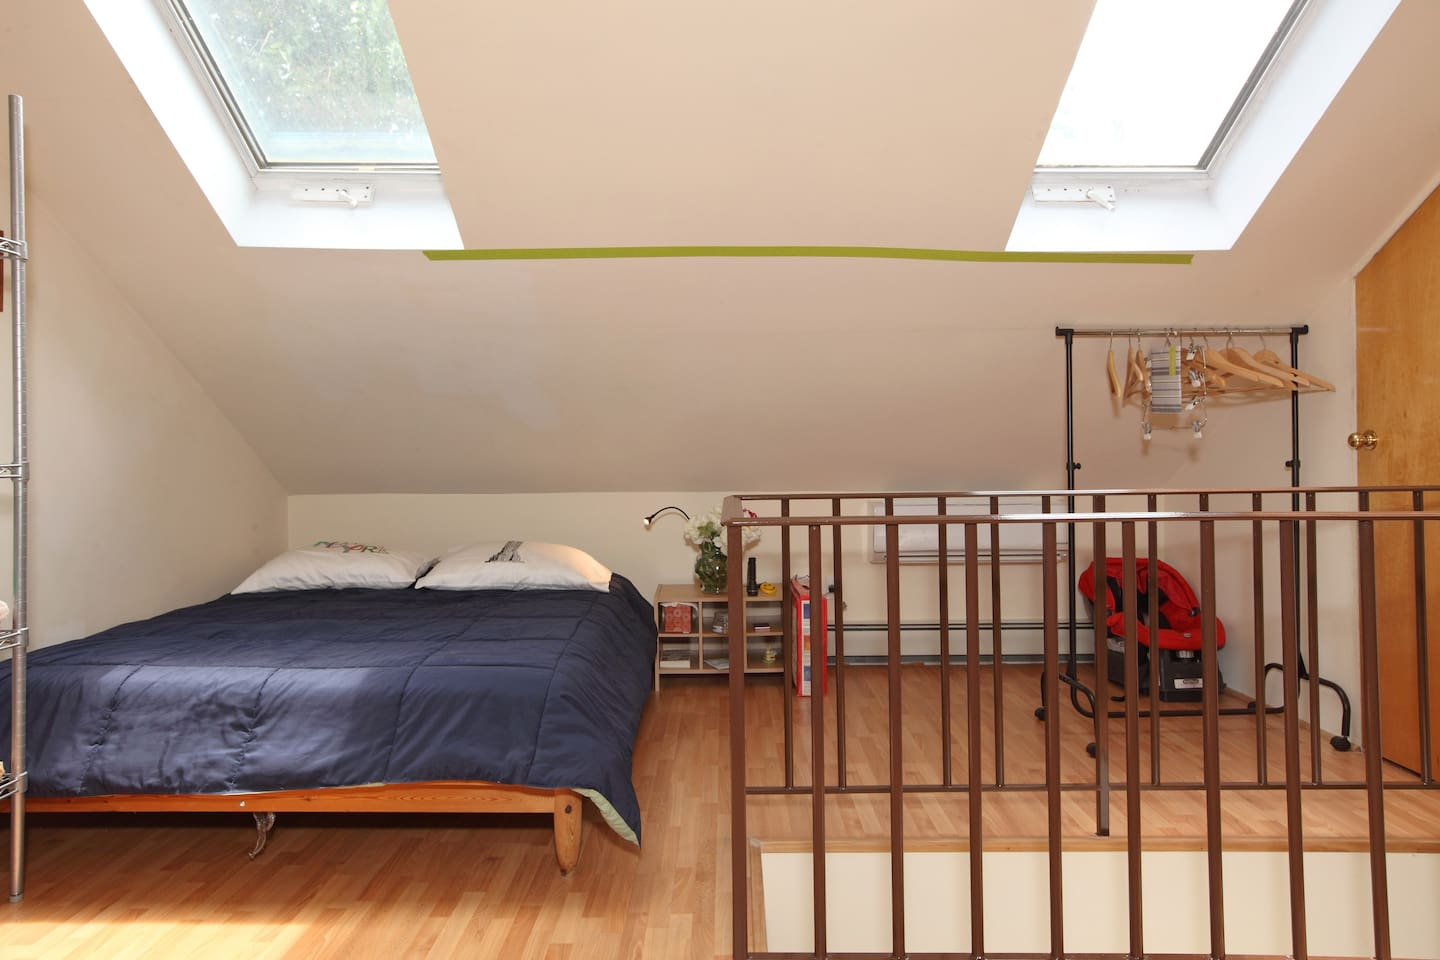 Queen size bed, spotless room with two bright skylight's windows